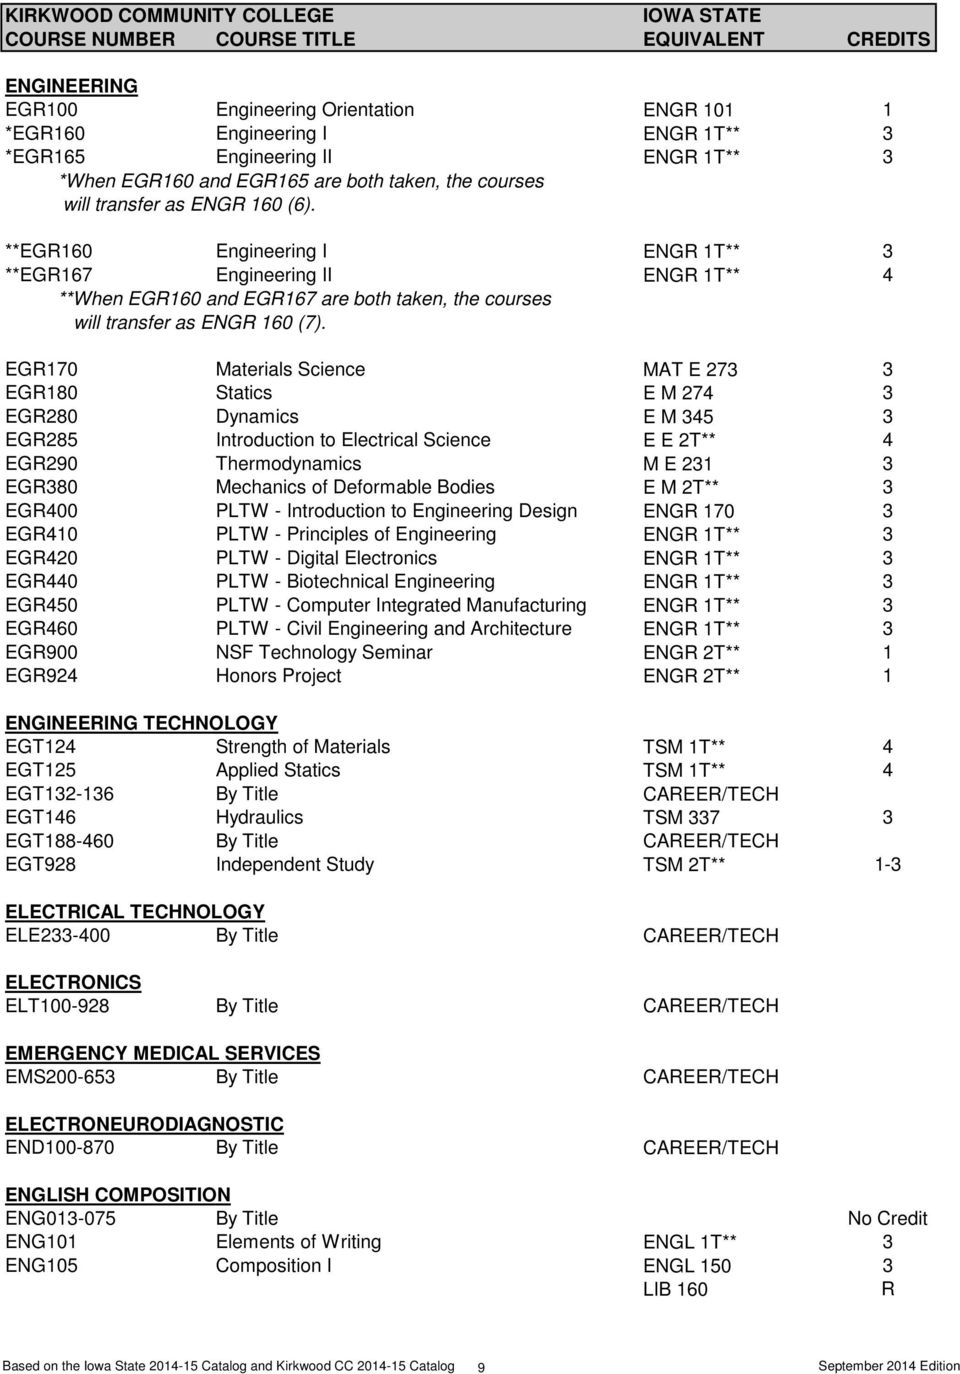 EGR170 Materials Science MAT E 273 3 EGR180 Statics E M 274 3 EGR280 Dynamics E M 345 3 EGR285 Introduction to Electrical Science E E 2T** 4 EGR290 Thermodynamics M E 231 3 EGR380 Mechanics of